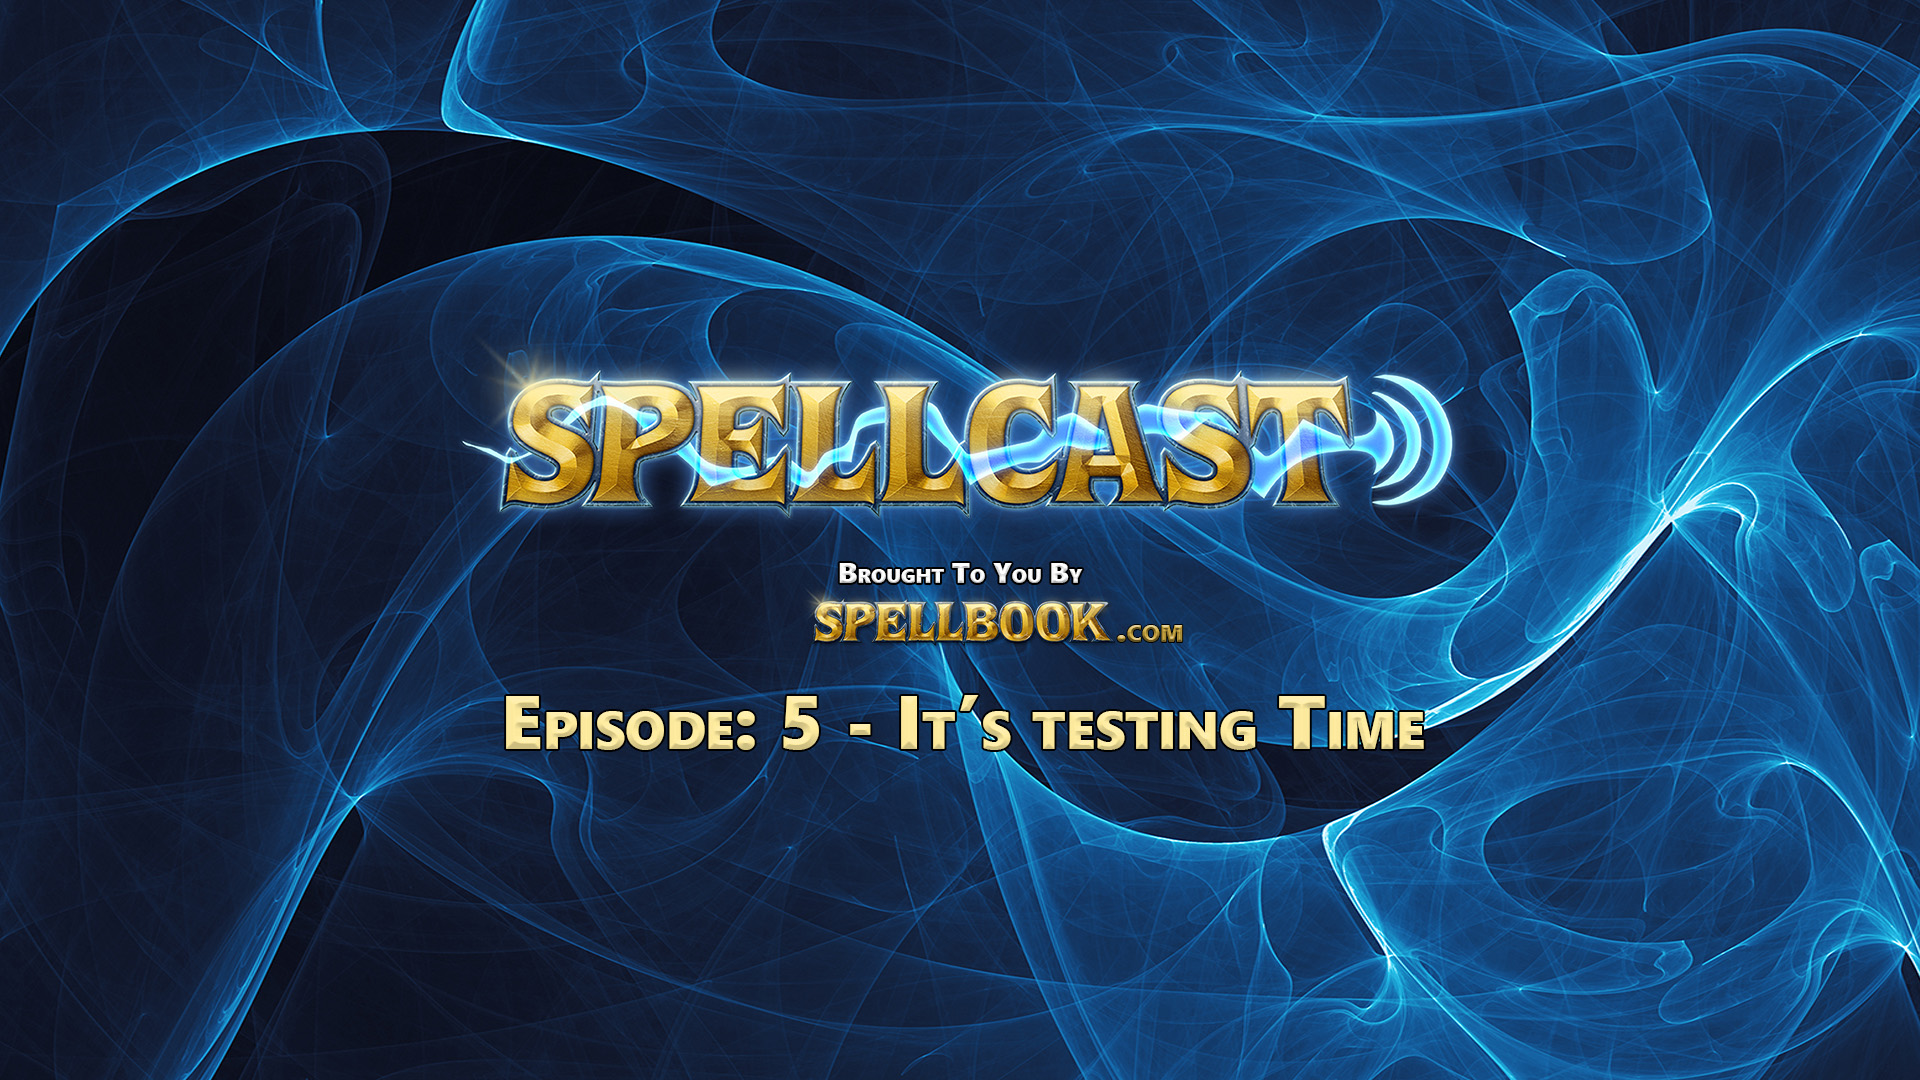 Spellcast Episode: 5 - It's Testing Time